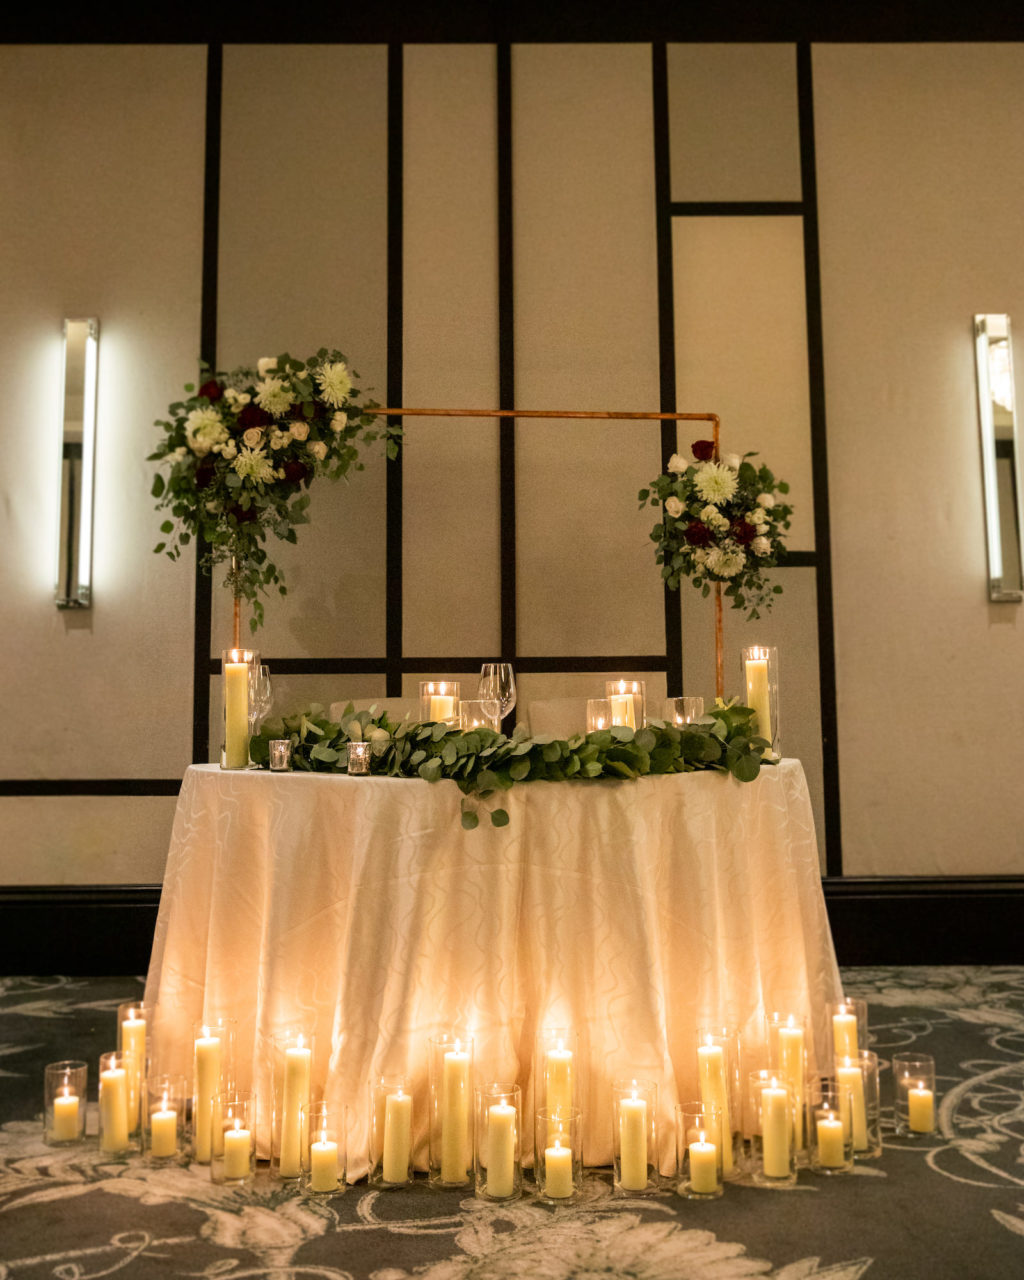 Elegant Timeless Wedding Reception Decor, Sweetheart Table with Ivory Linen, Candles, Greenery Eucalyptus Garland, Arch with Floral Arrangements | Tampa Bay Wedding Planner Elegant Affairs by Design